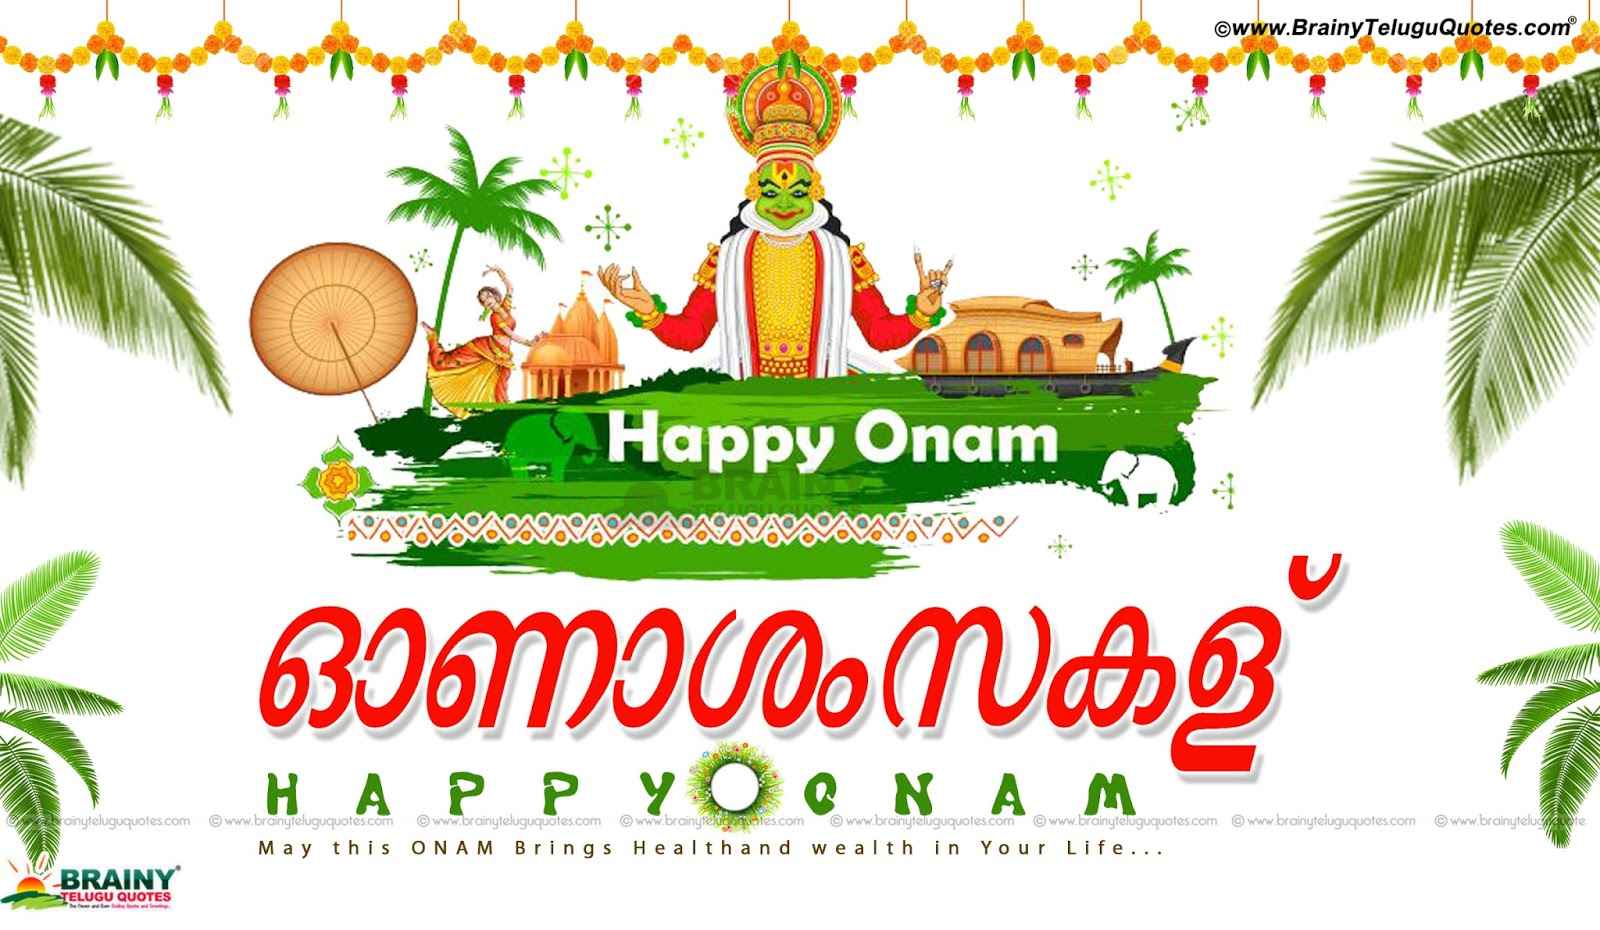 Beautiful Quotes And Pictures About Onam Awesome Quotations And